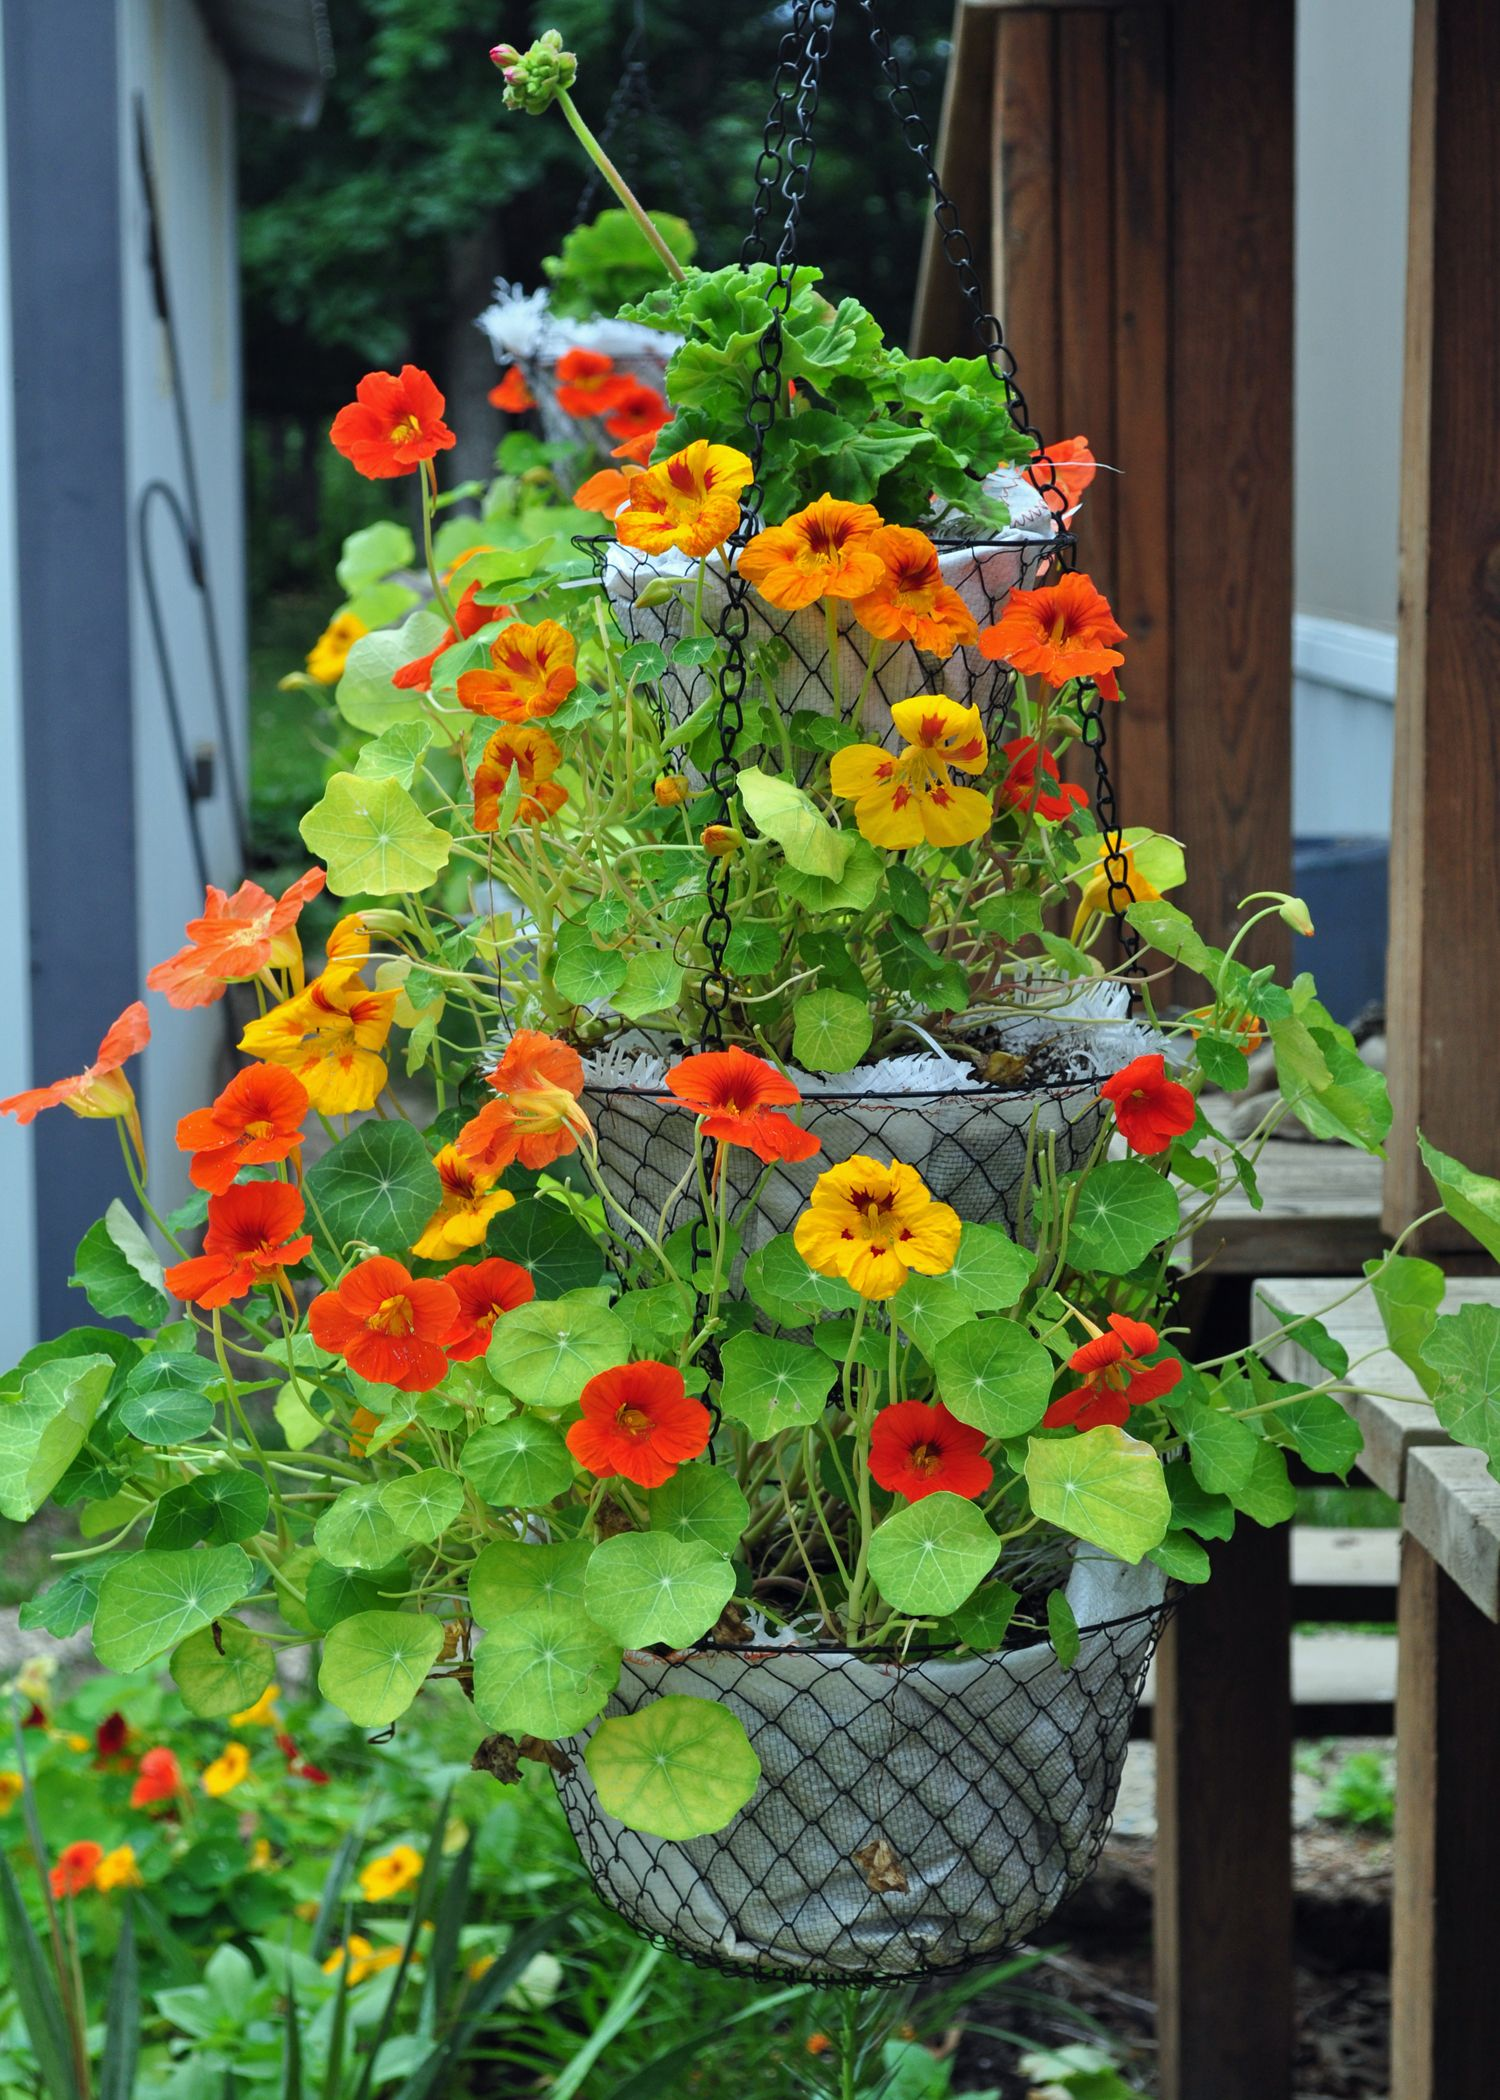 Buy culinary herbs plants nasturtium plants - Nasturtiums And Geranium That I Planted In The 3 Tiered Kitchen Hanging Basket Lined Baskets